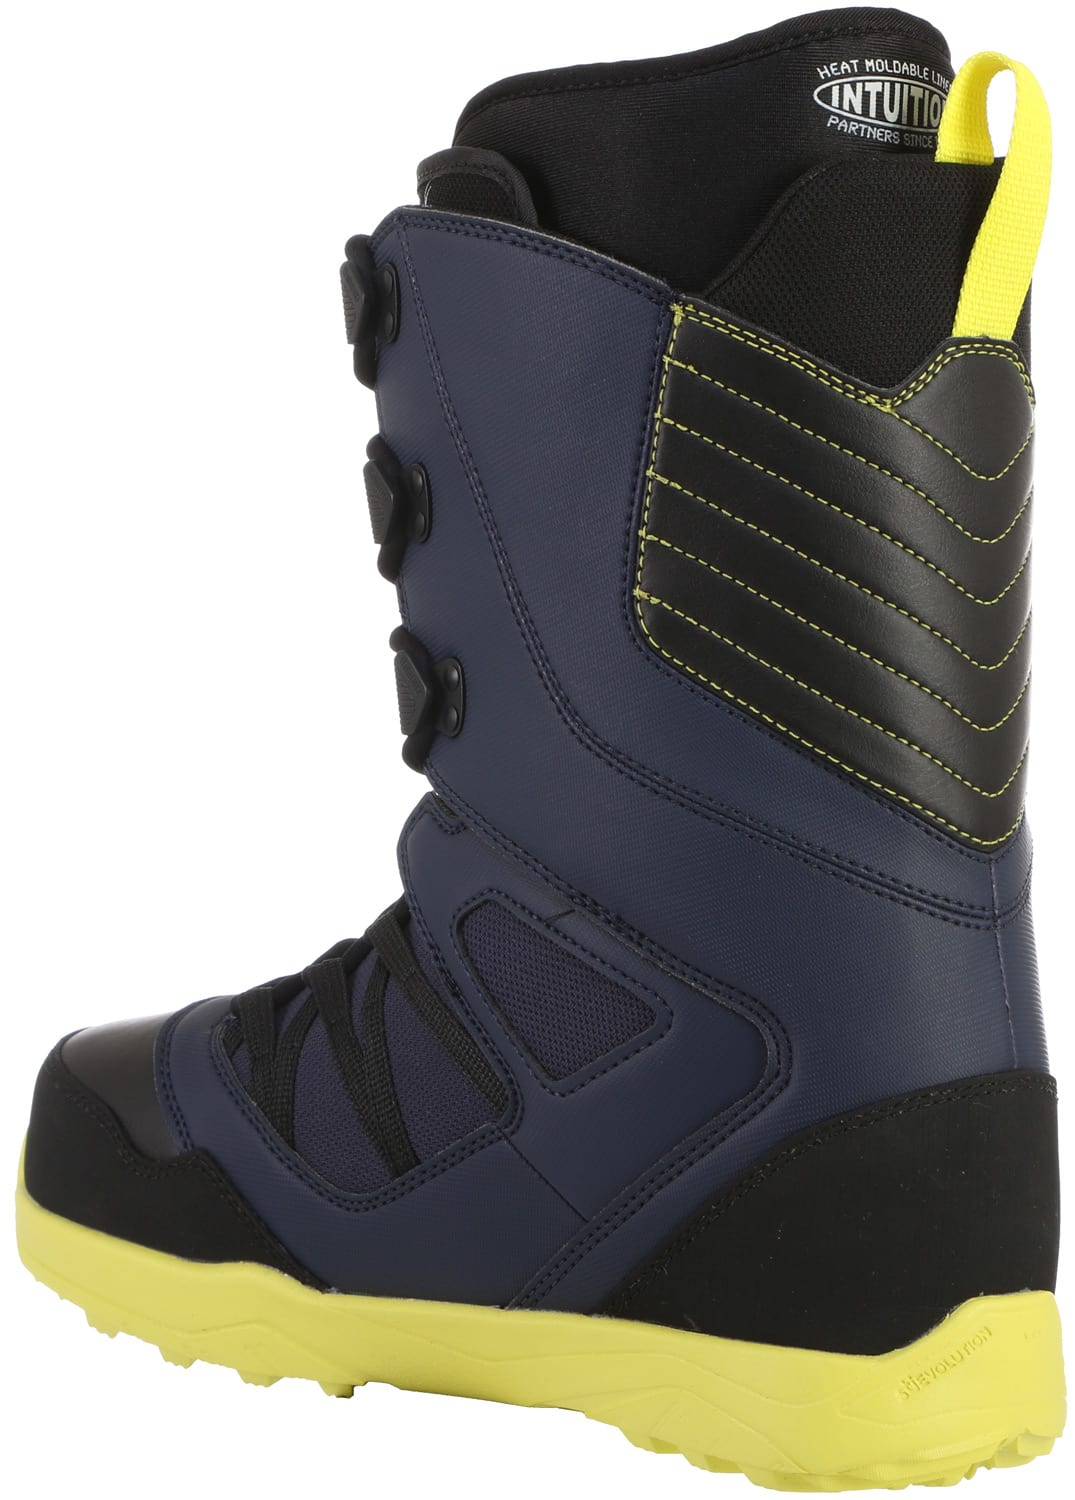 On Sale 32 Thirty Two Light Snowboard Boots 2017